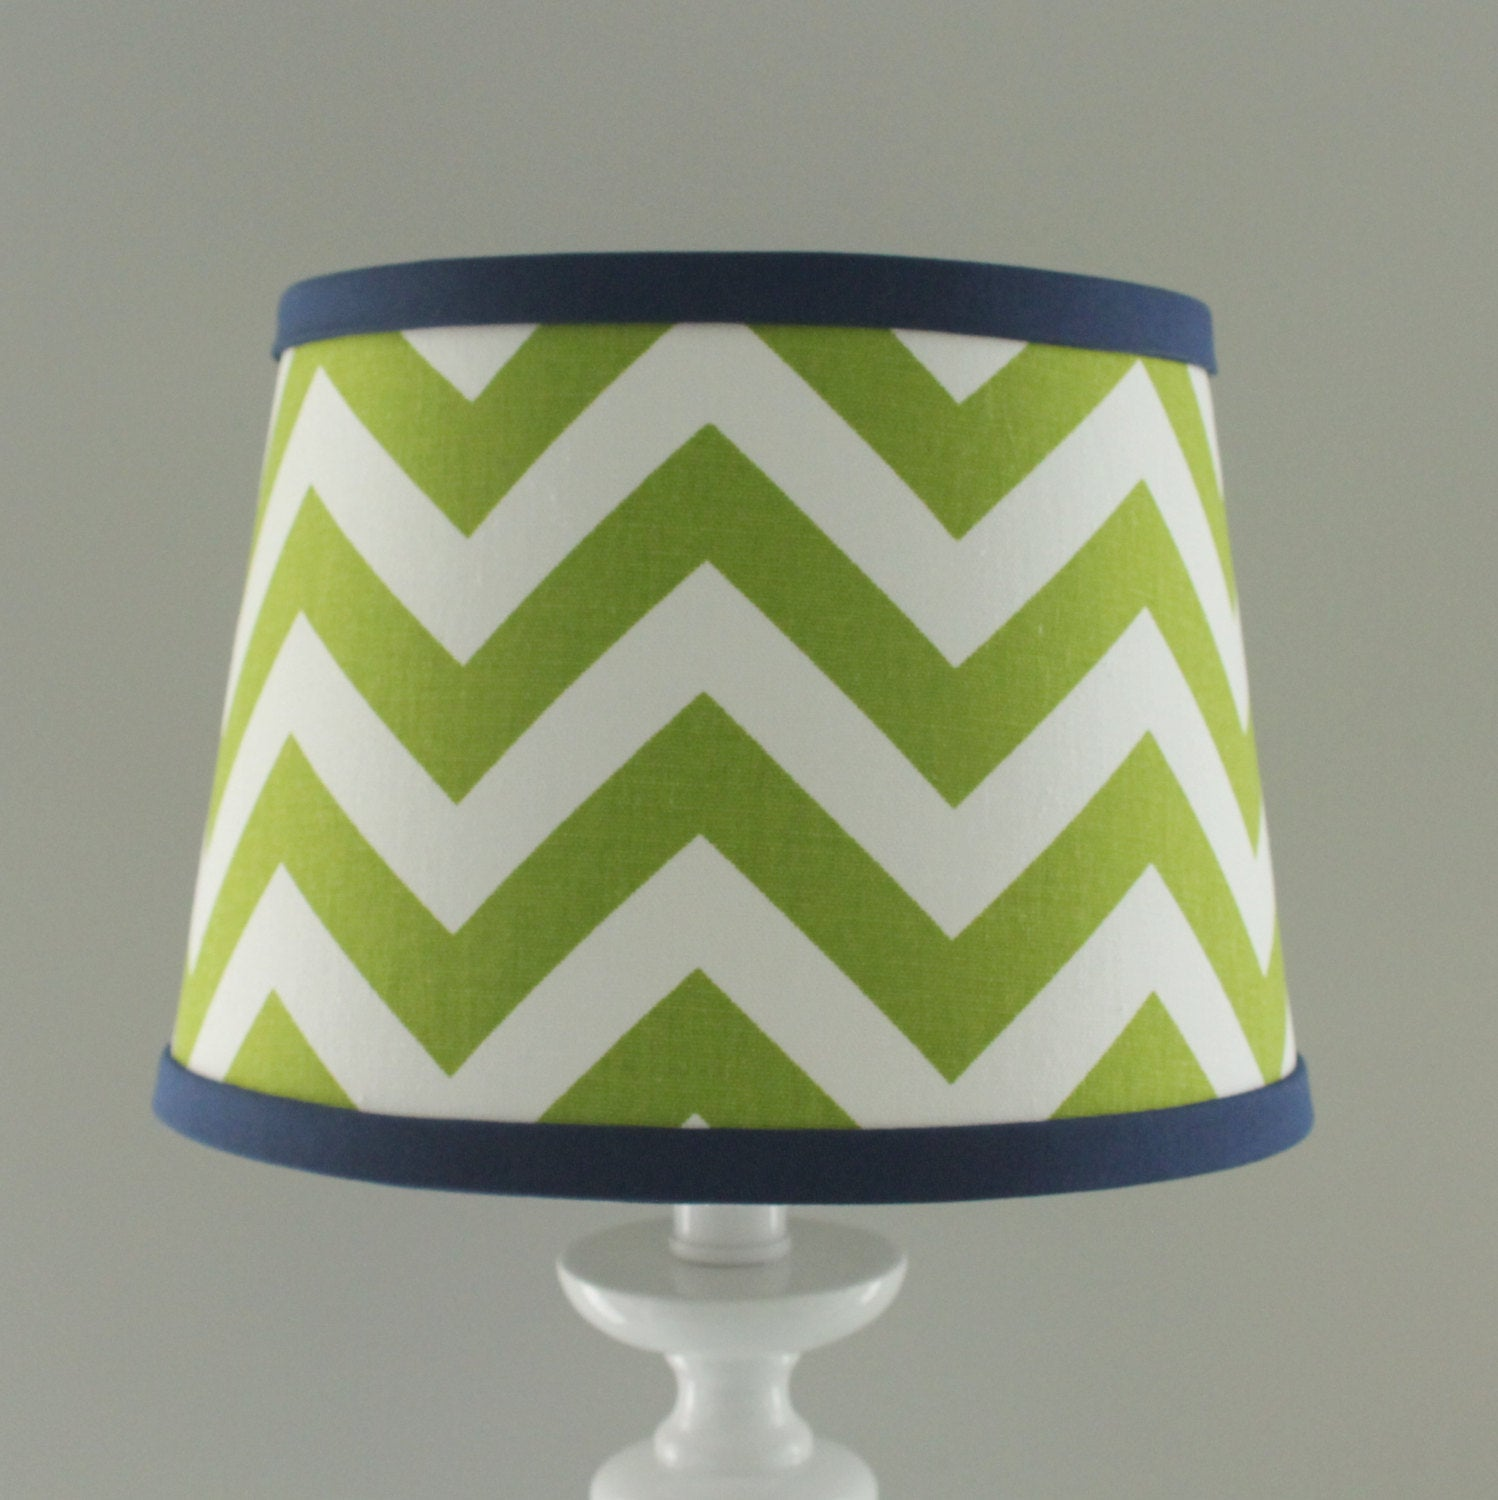 Green & Navy Chevron lamp shade